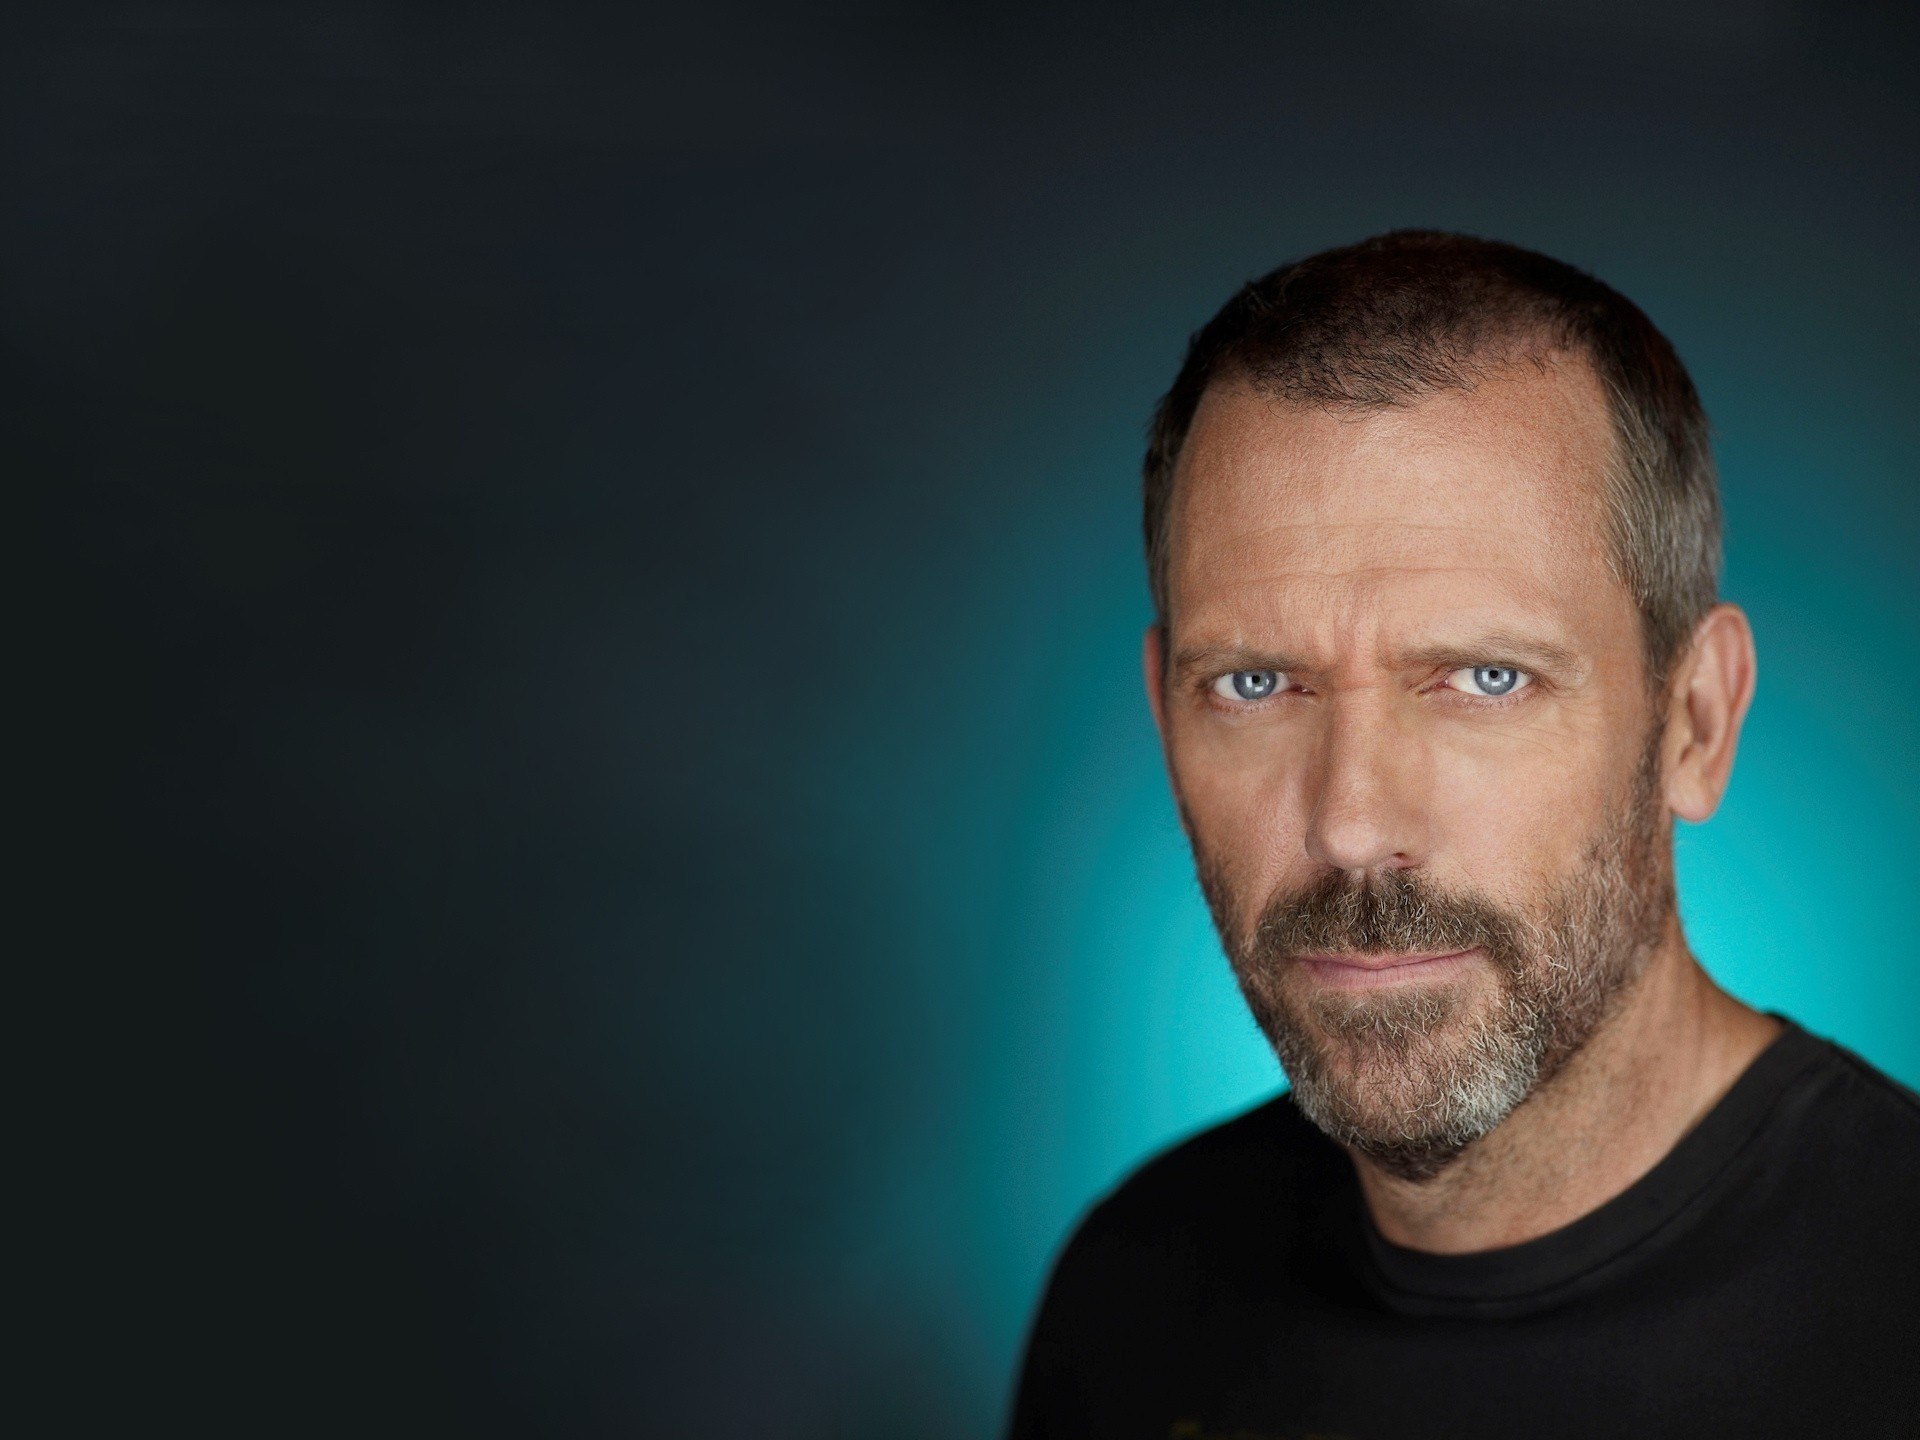 Gregory House, House m.d., hugh laurie, doctor house, actor, face